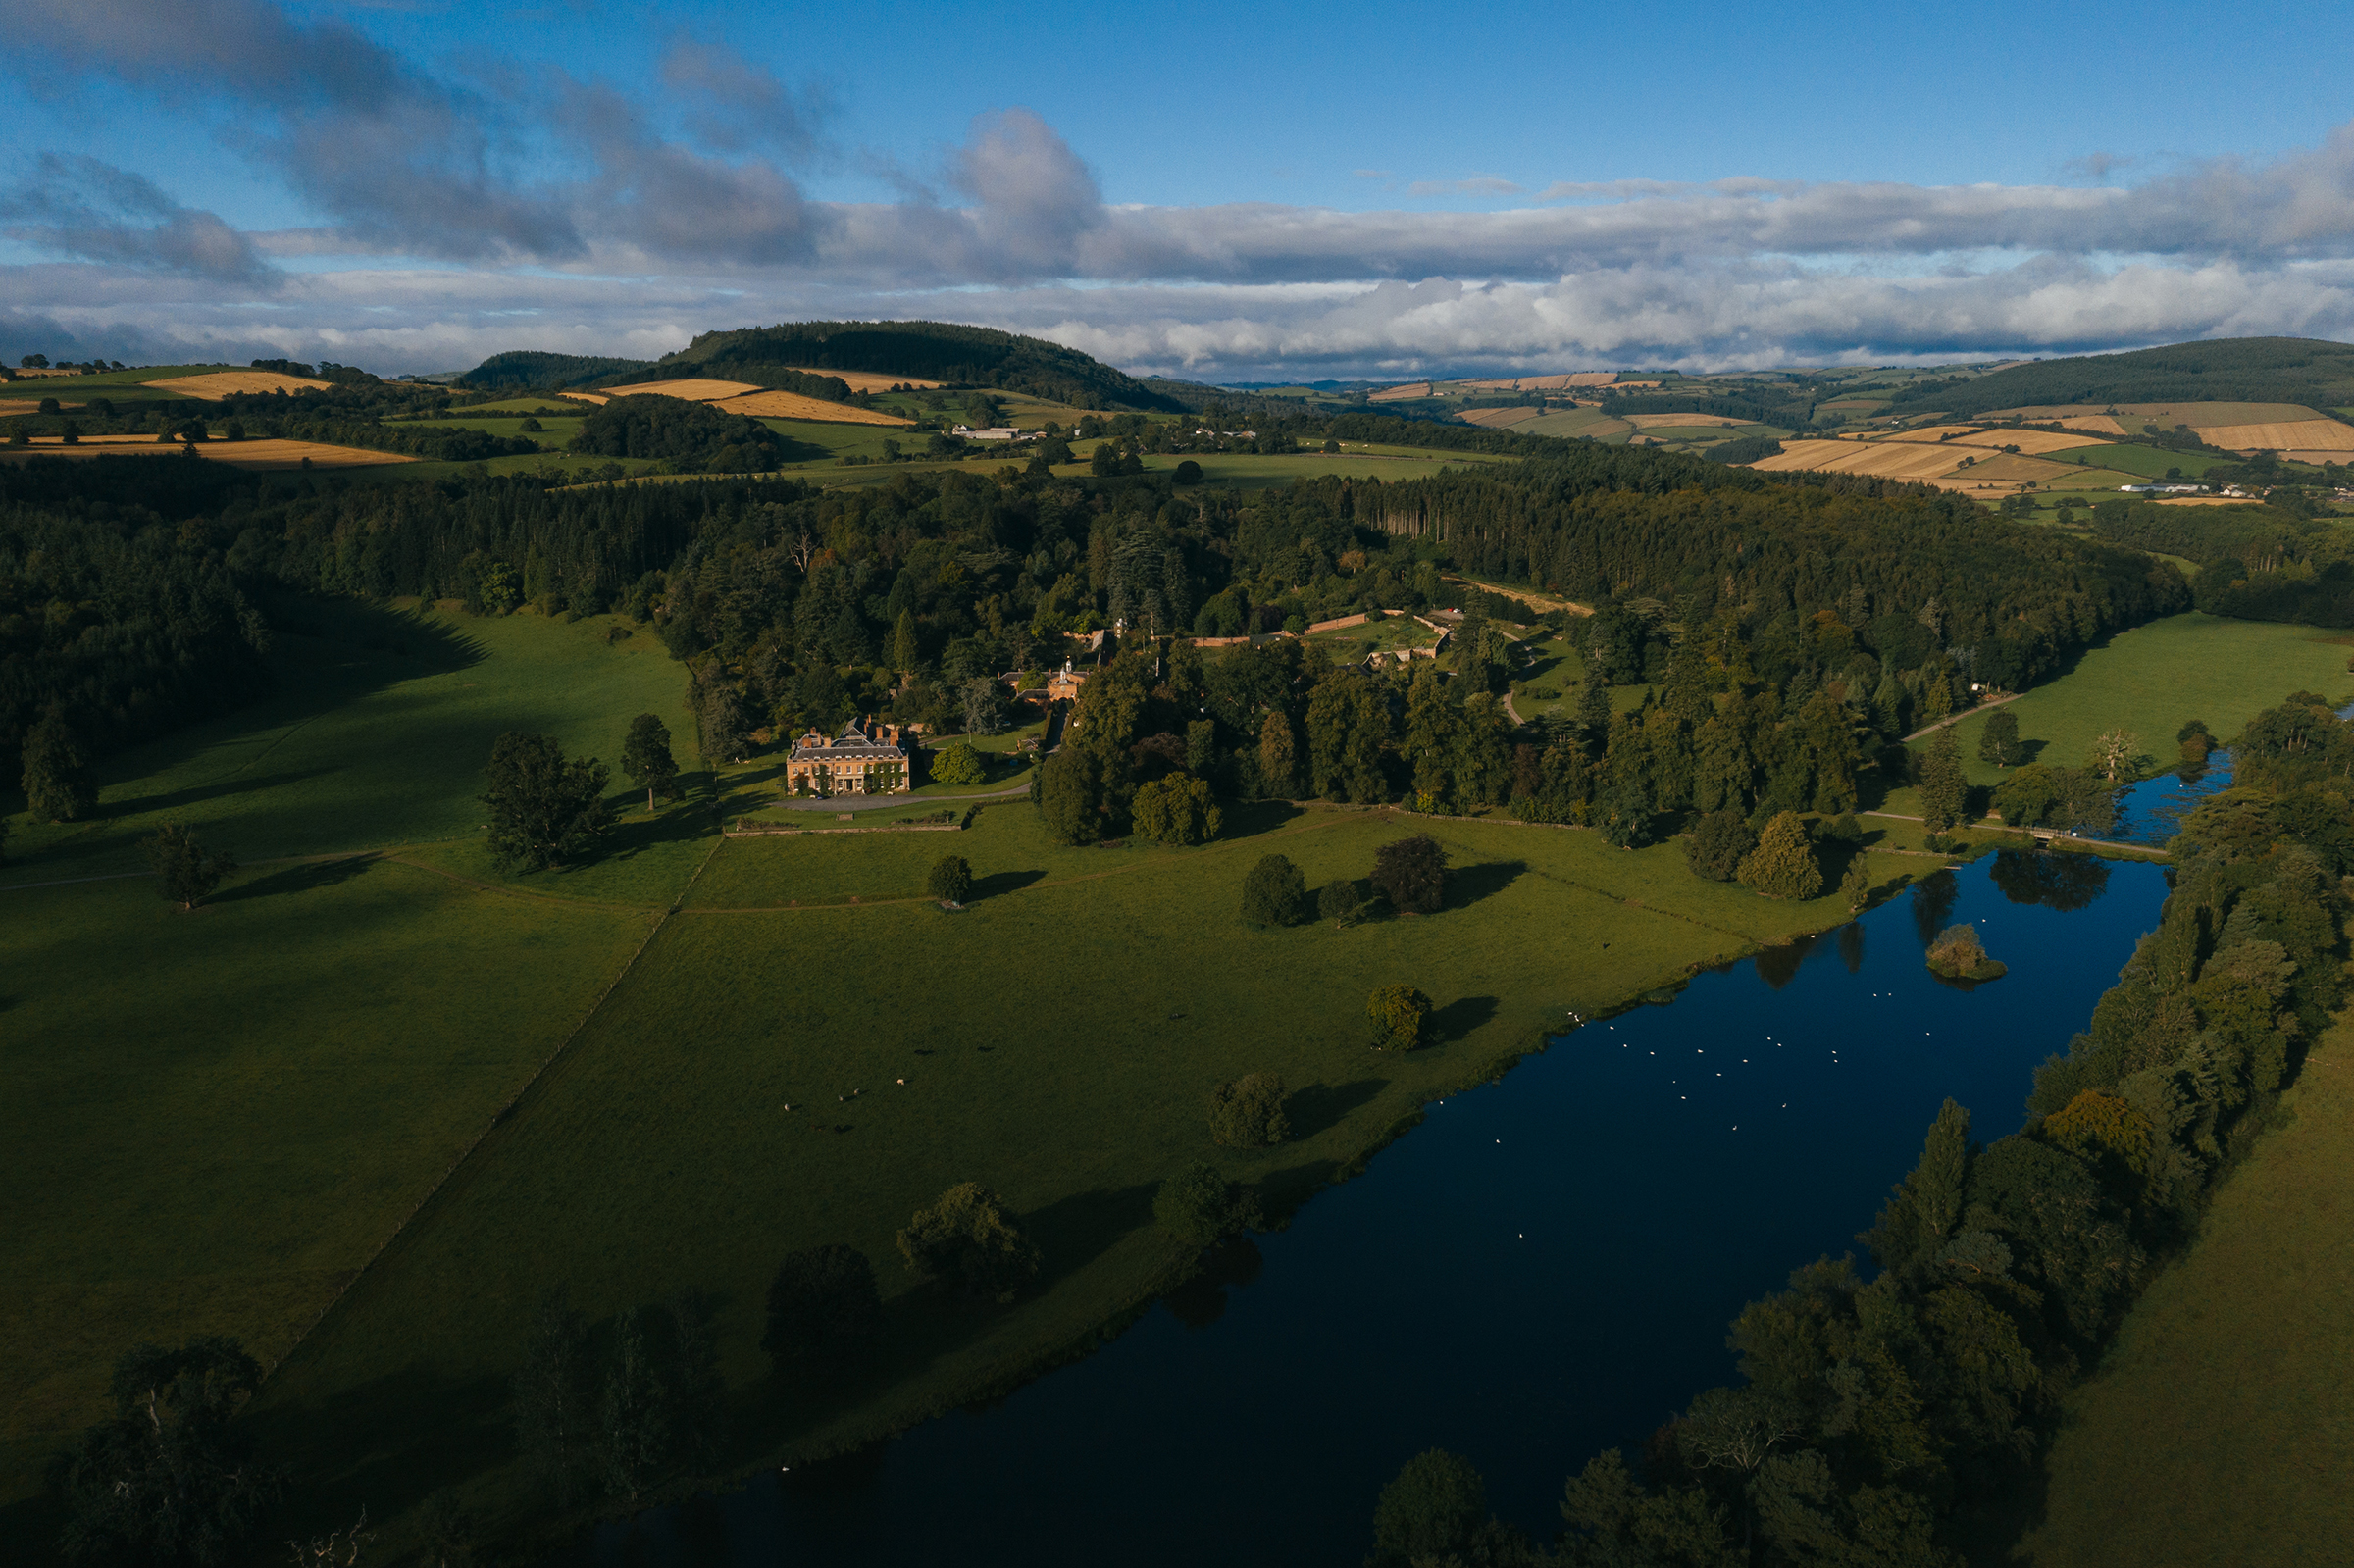 Walcot Hall, Shropshire, England, drone photo of manor and grounds - photo by Andrew Billington